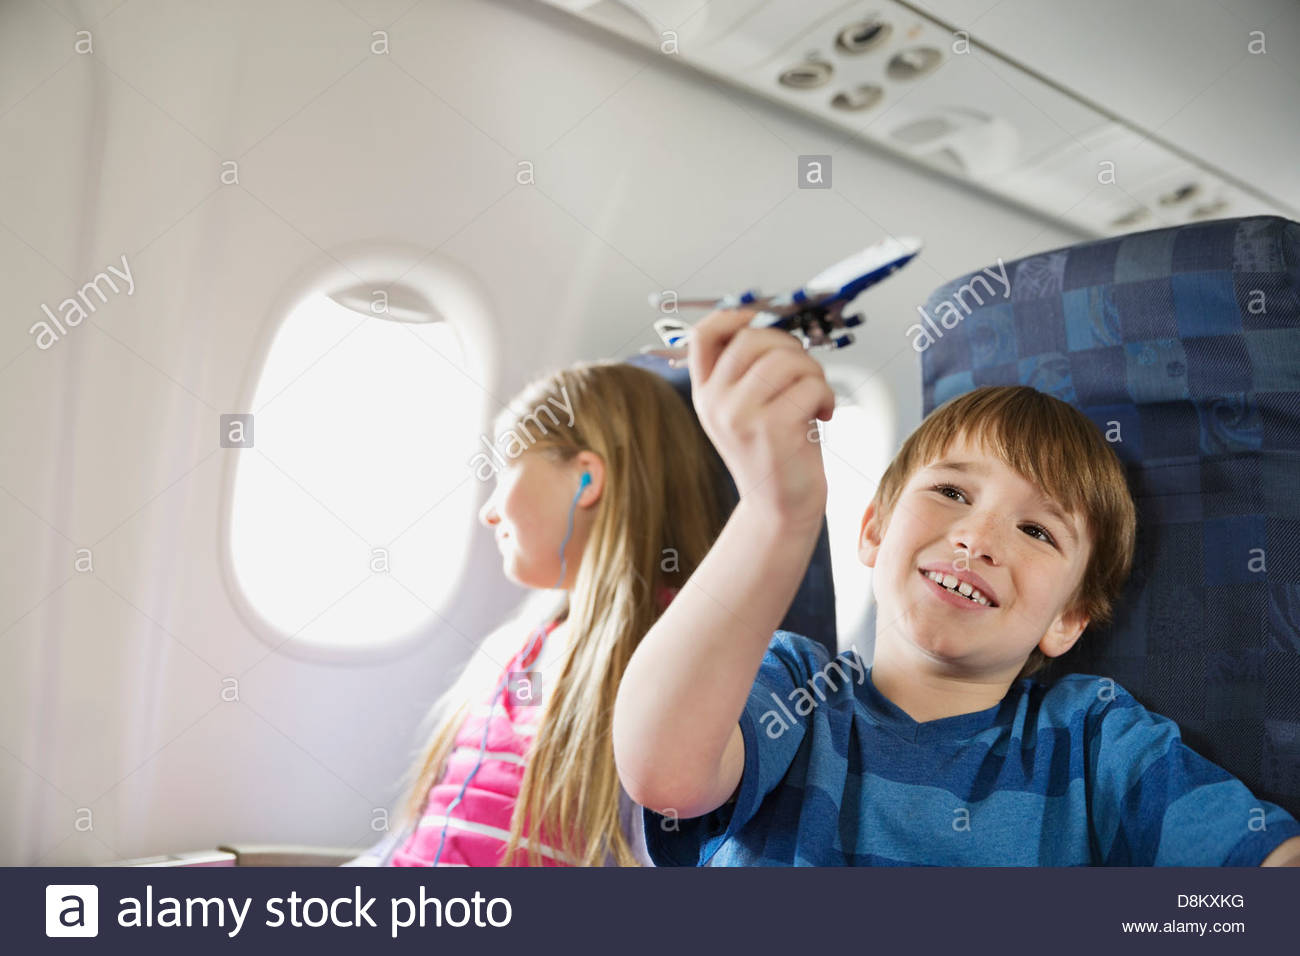 Boy playing with toy plane while sister listens to music in airplane - Stock Image